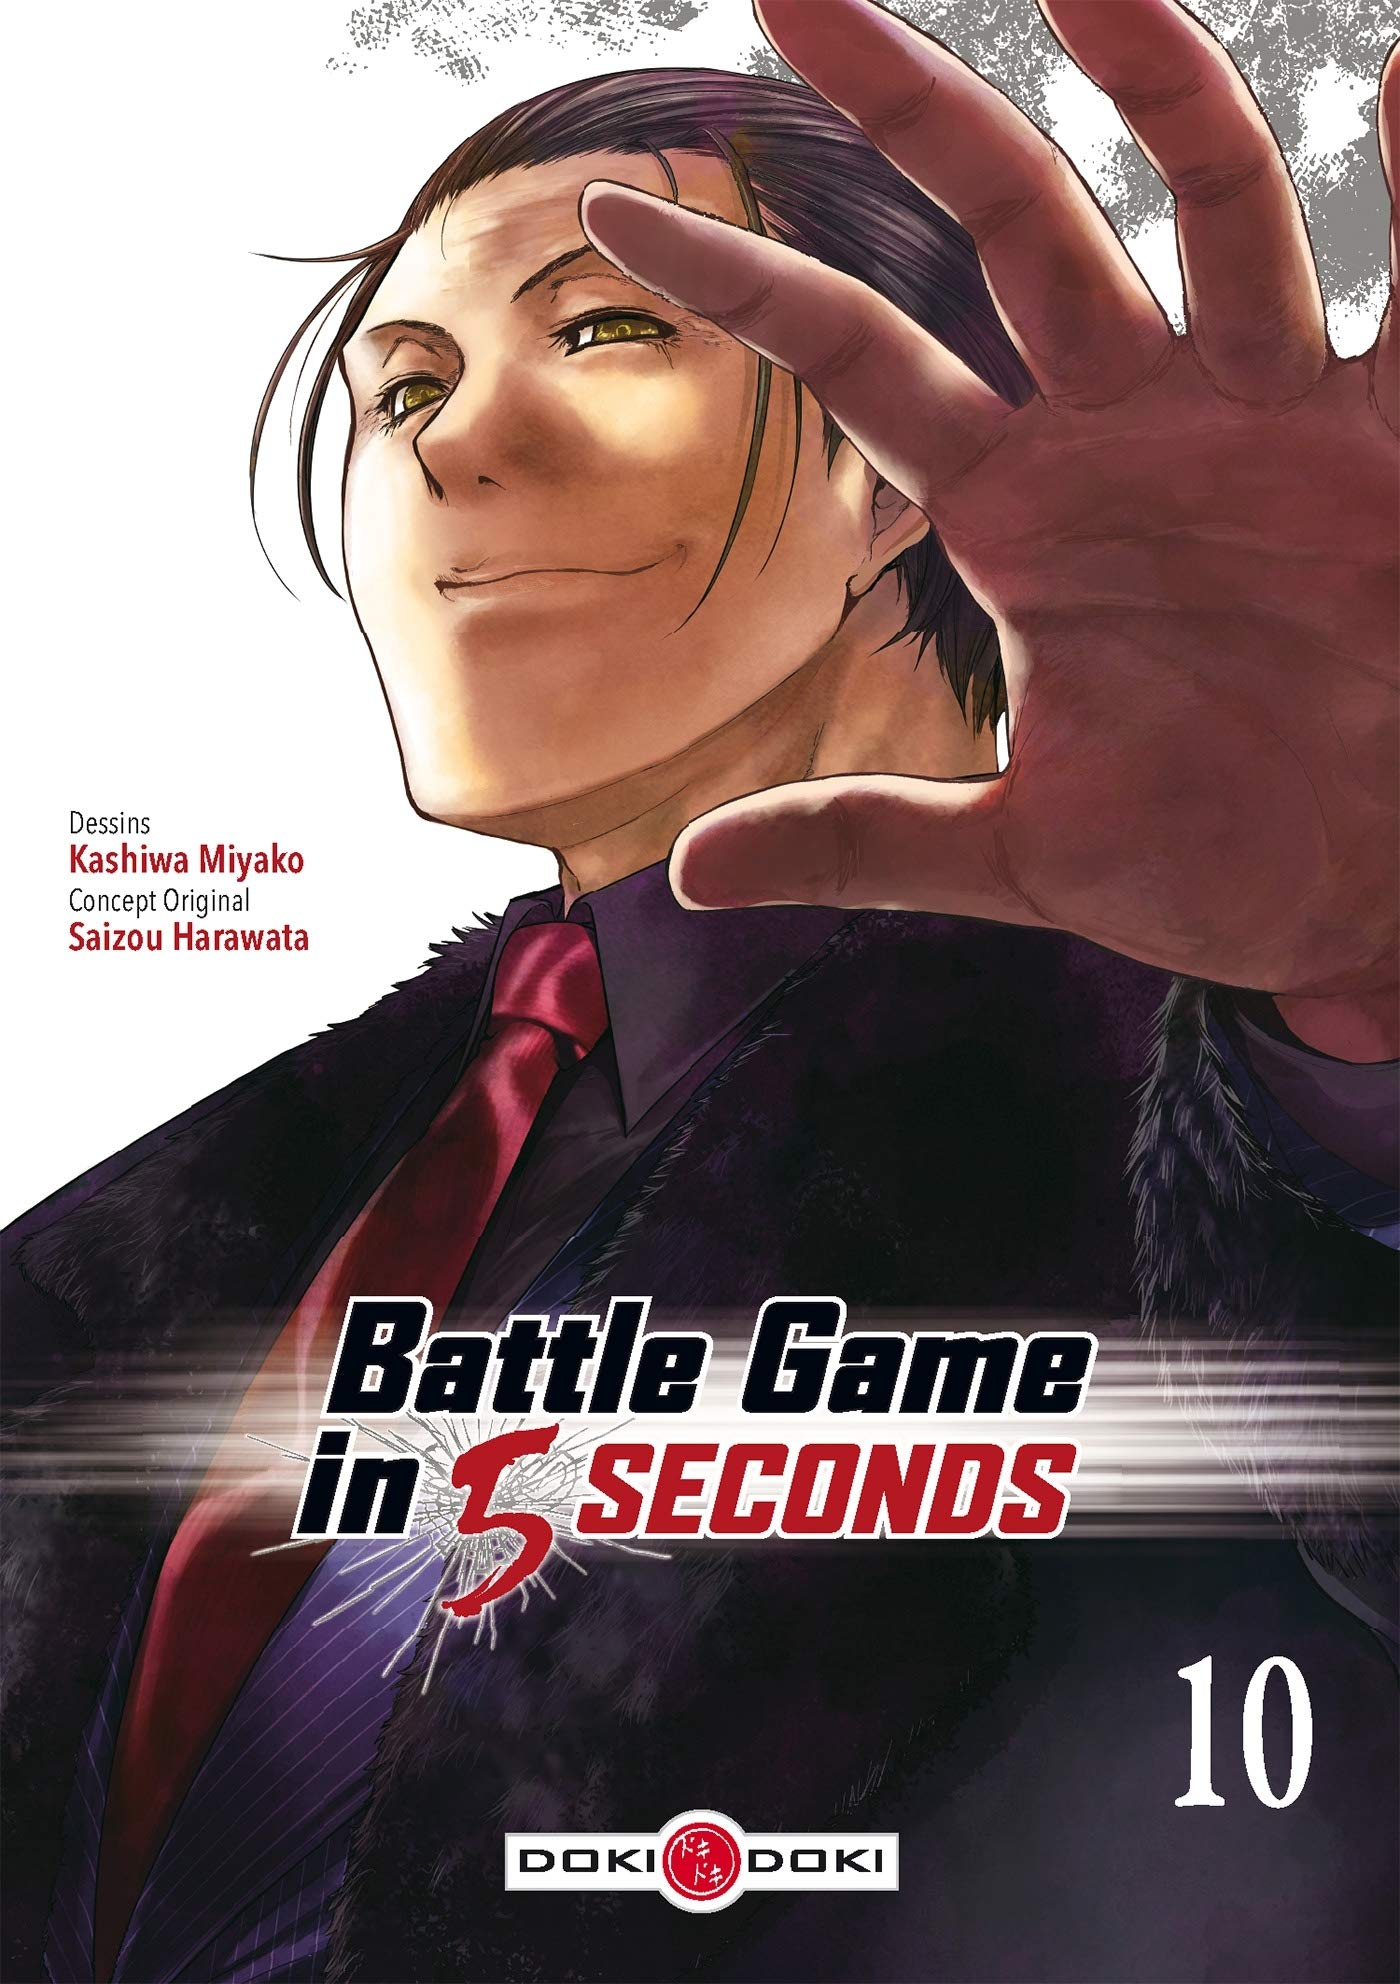 Battle Game in 5 seconds 10